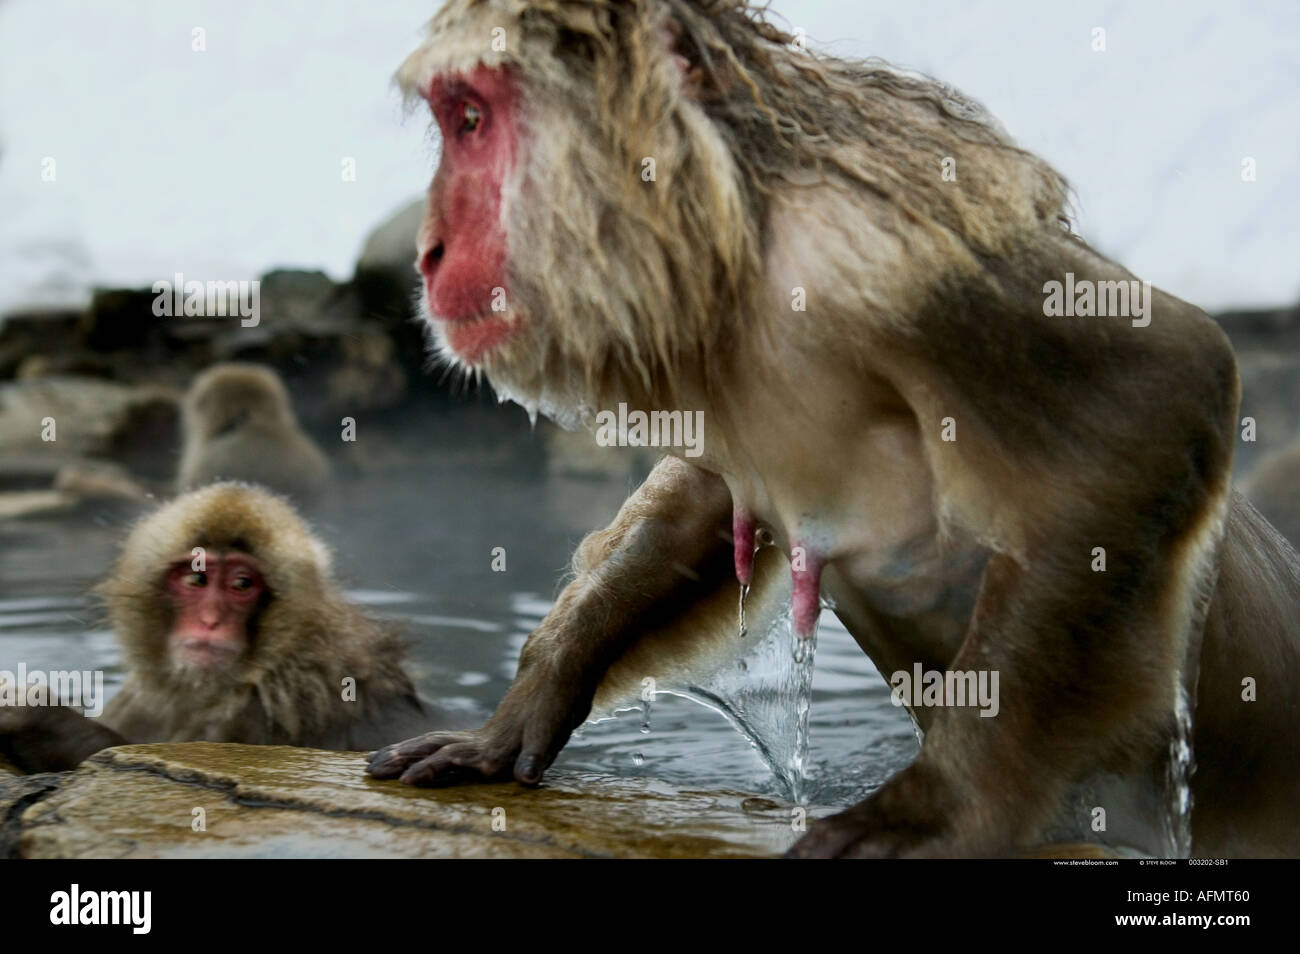 Snow monkey climbing out of the hot springs Jigokudani National Park Japan - Stock Image